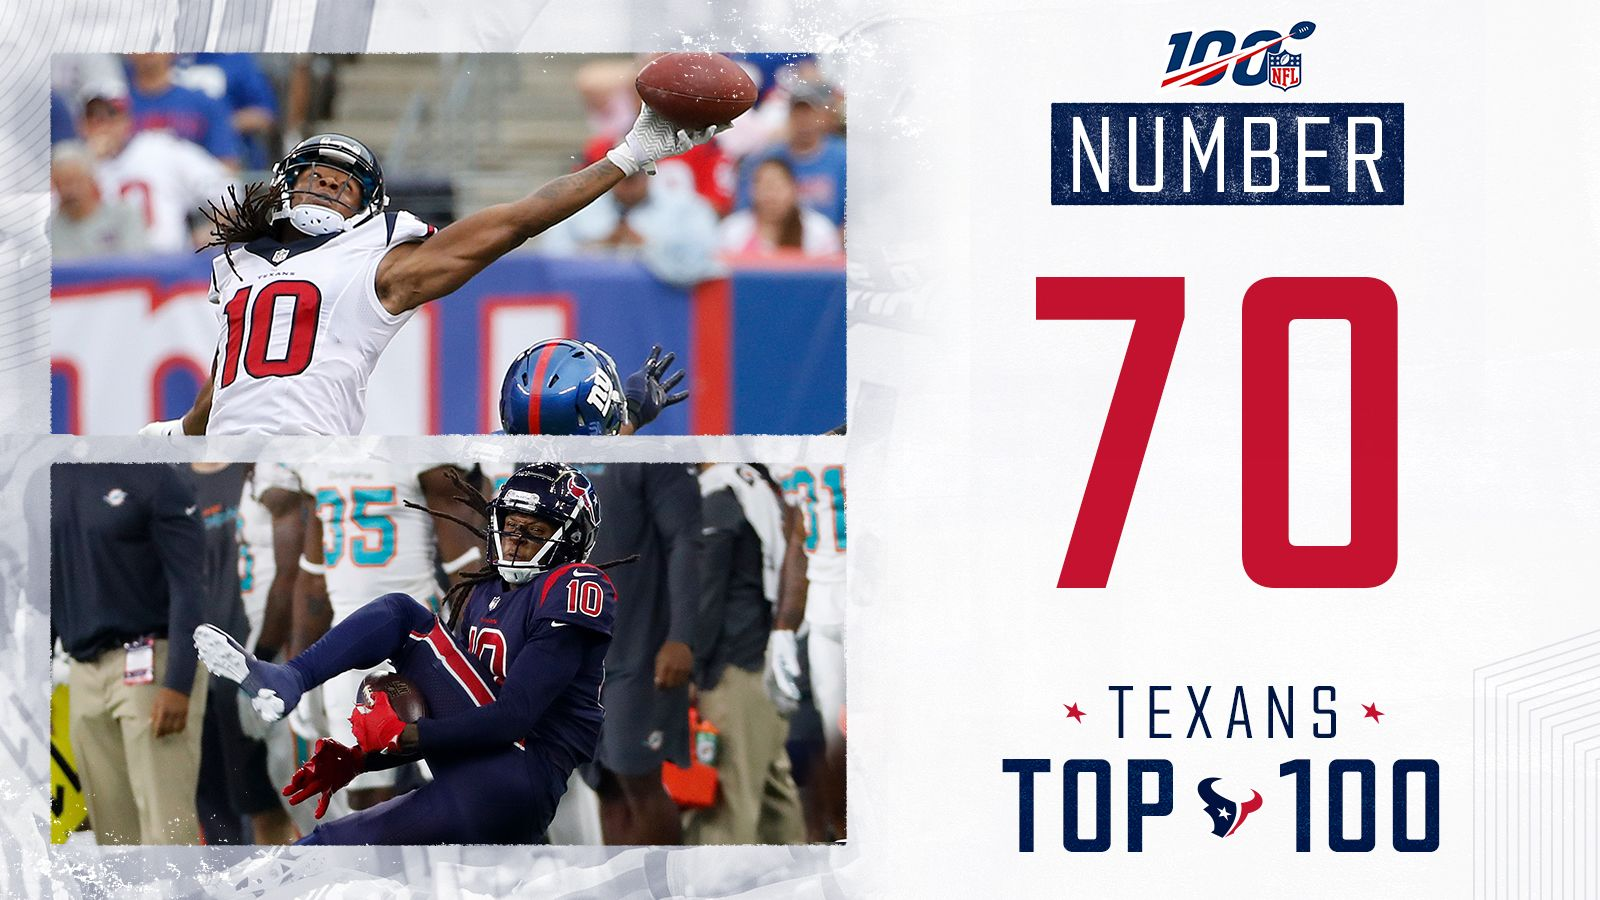 70_Hopkins catches that didn't count - TWITTER